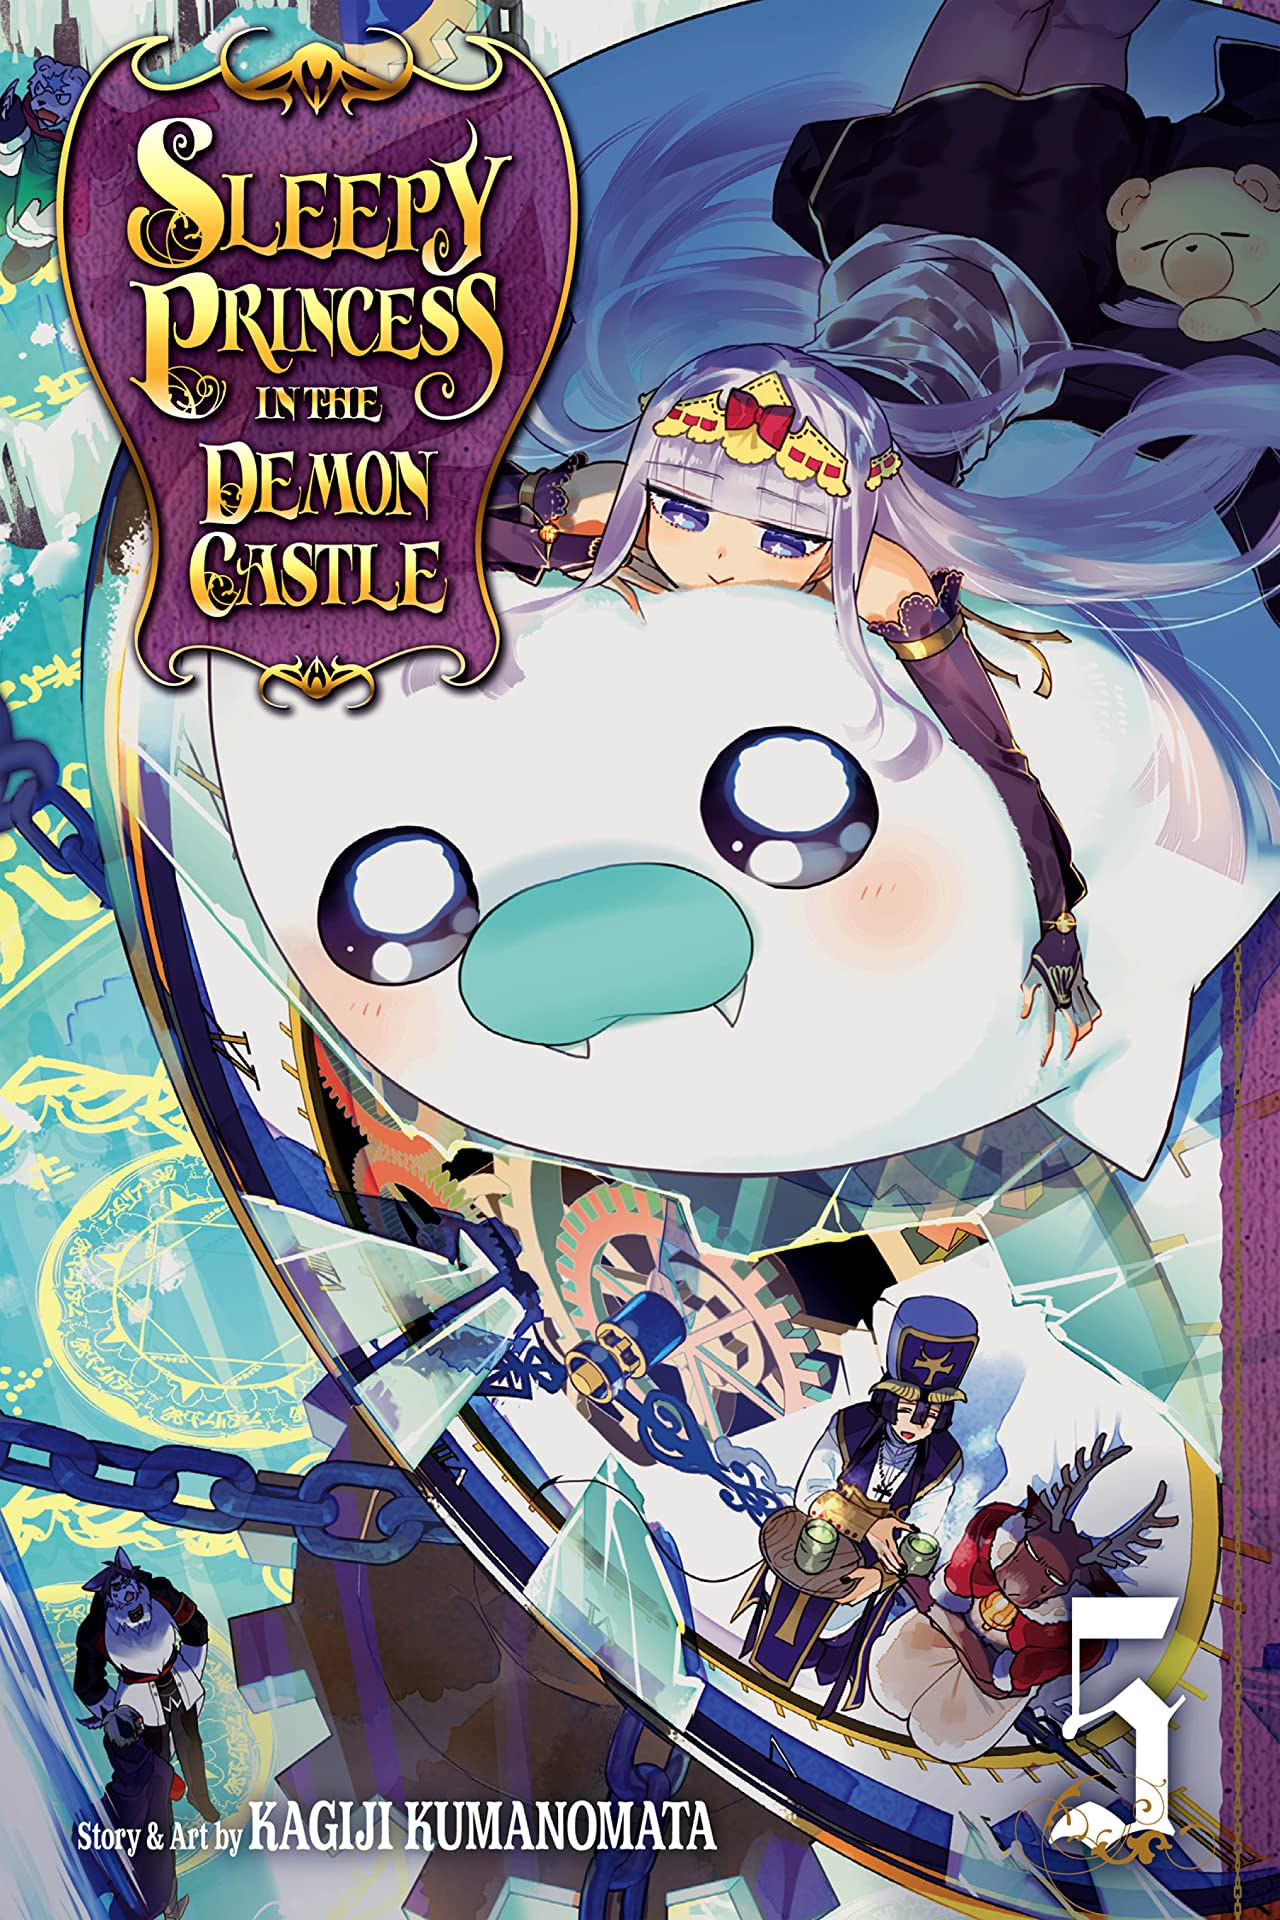 Sleepy Princess in the Demon Castle Vol. 5